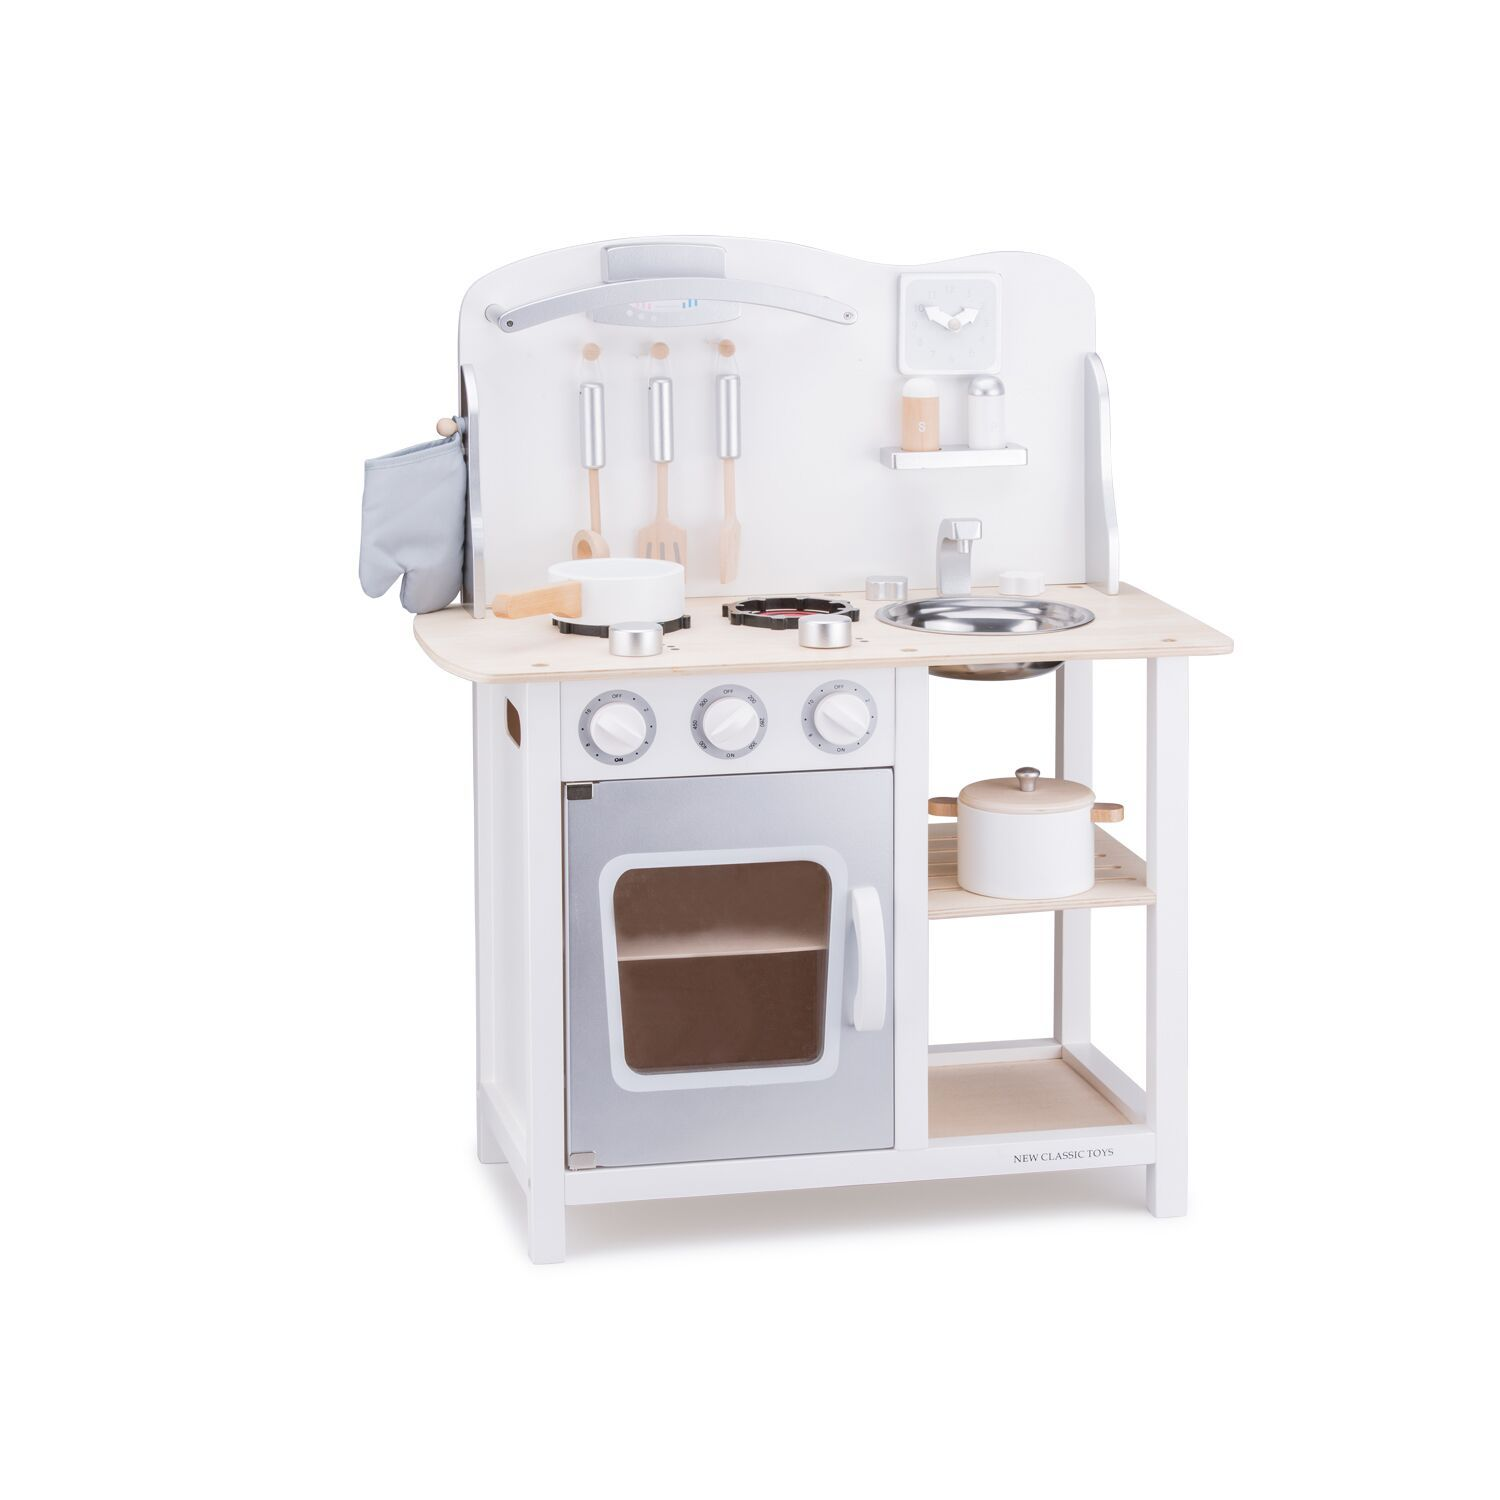 New Classic Toys Kitchenette New Classic Toys Pretend Play at Little Earth Nest Eco Shop